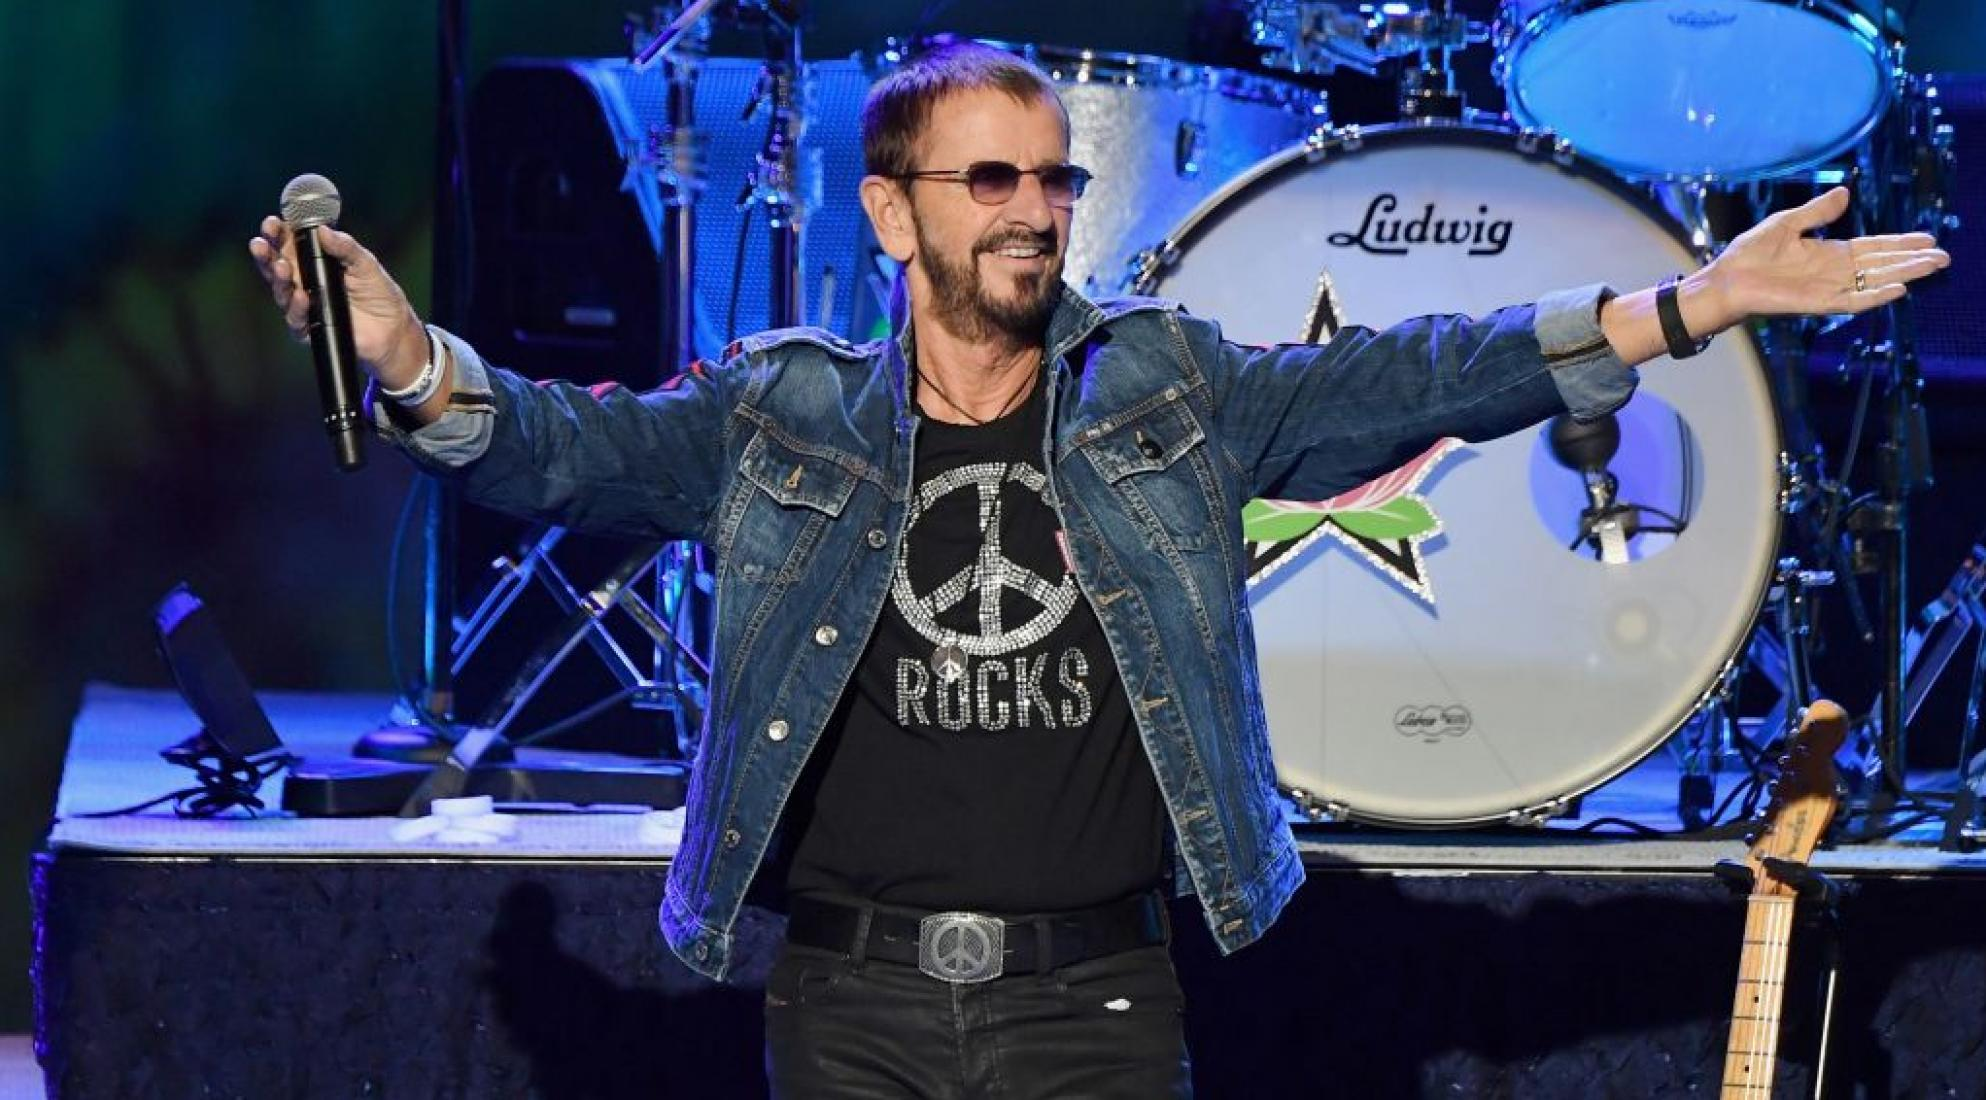 Ringo Starr performs at the 50th anniversary celebration of Woodstock in 2019